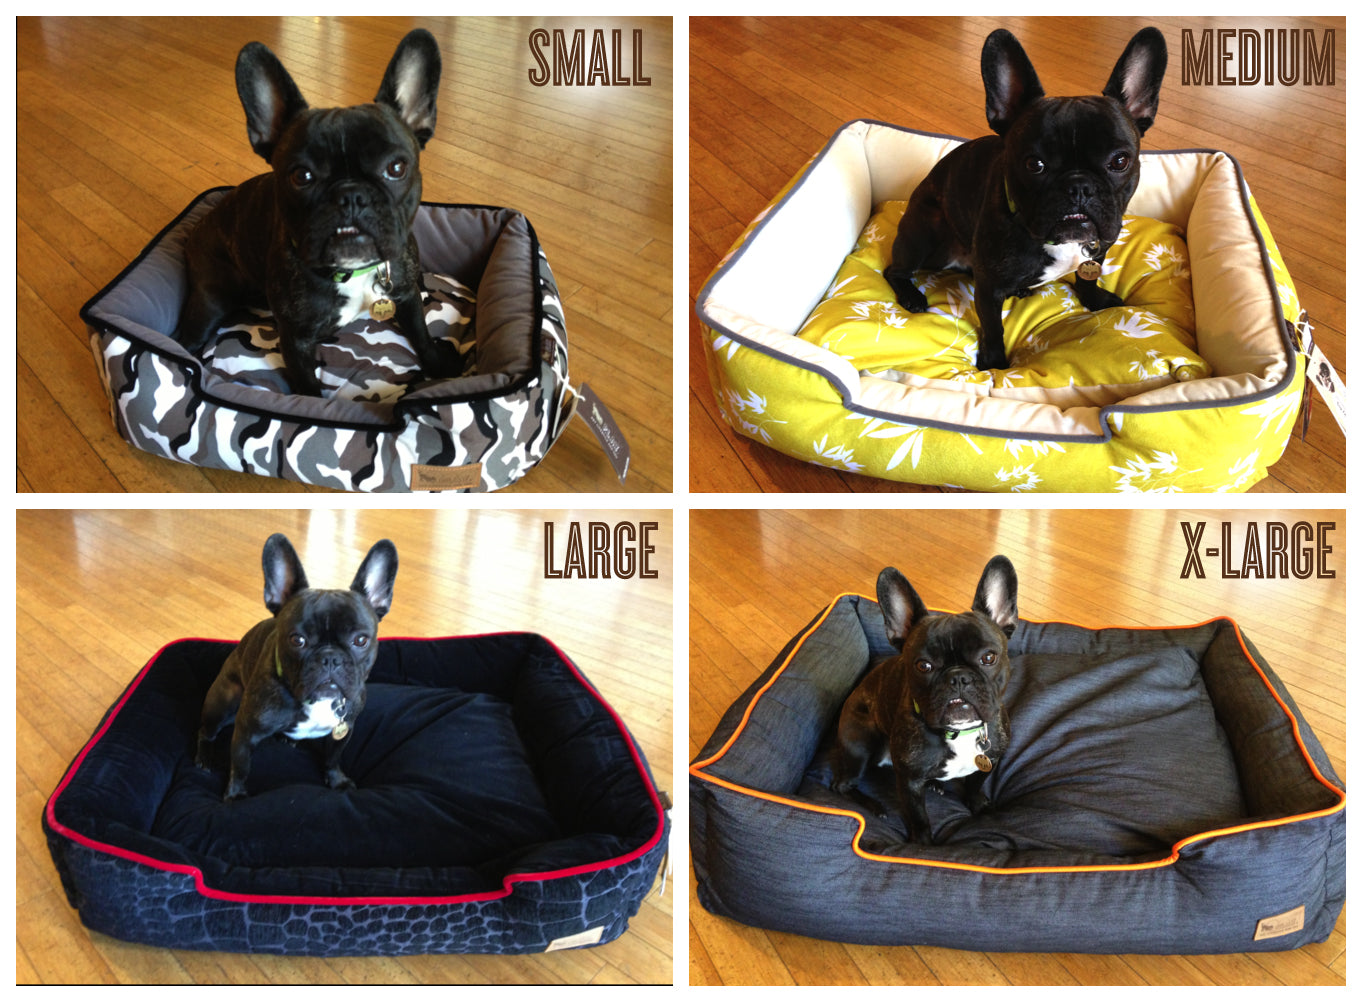 What size dog bed do you need?